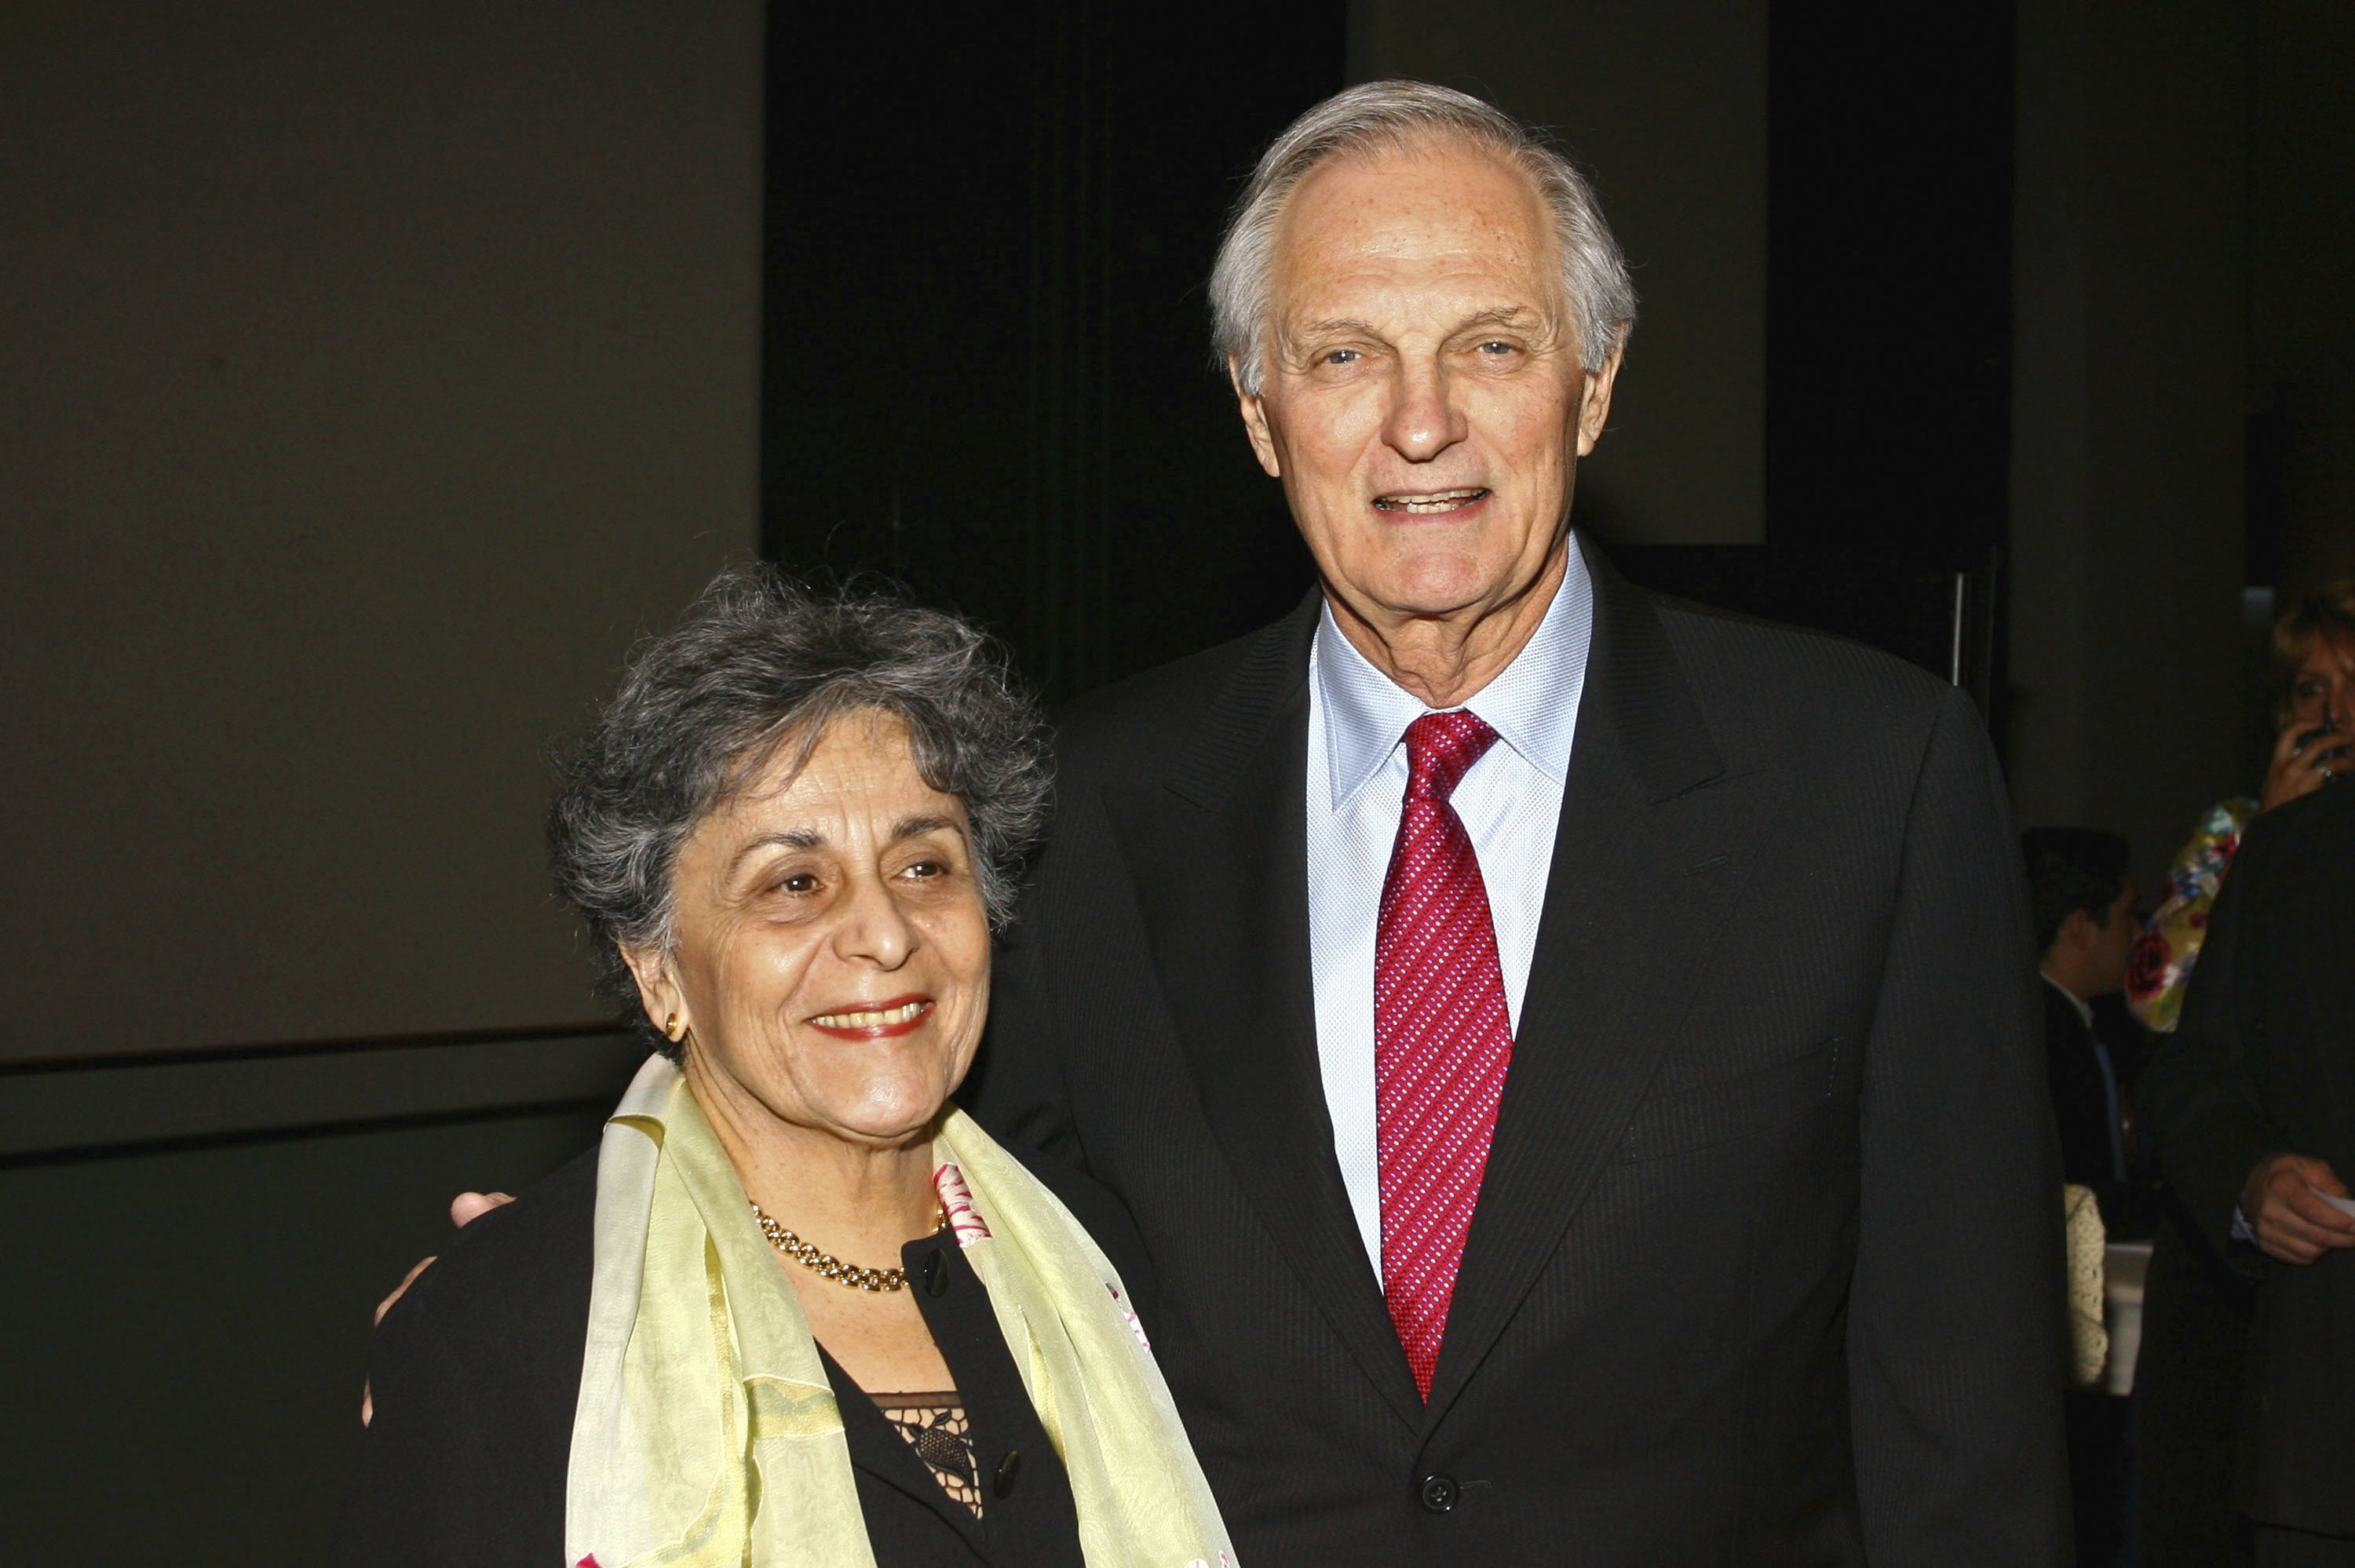 Arlene Alda und ihr Mann Alan Alda bei National Italian American Foundation East Coast Gala, 2006 in New York | Quelle: Getty Images